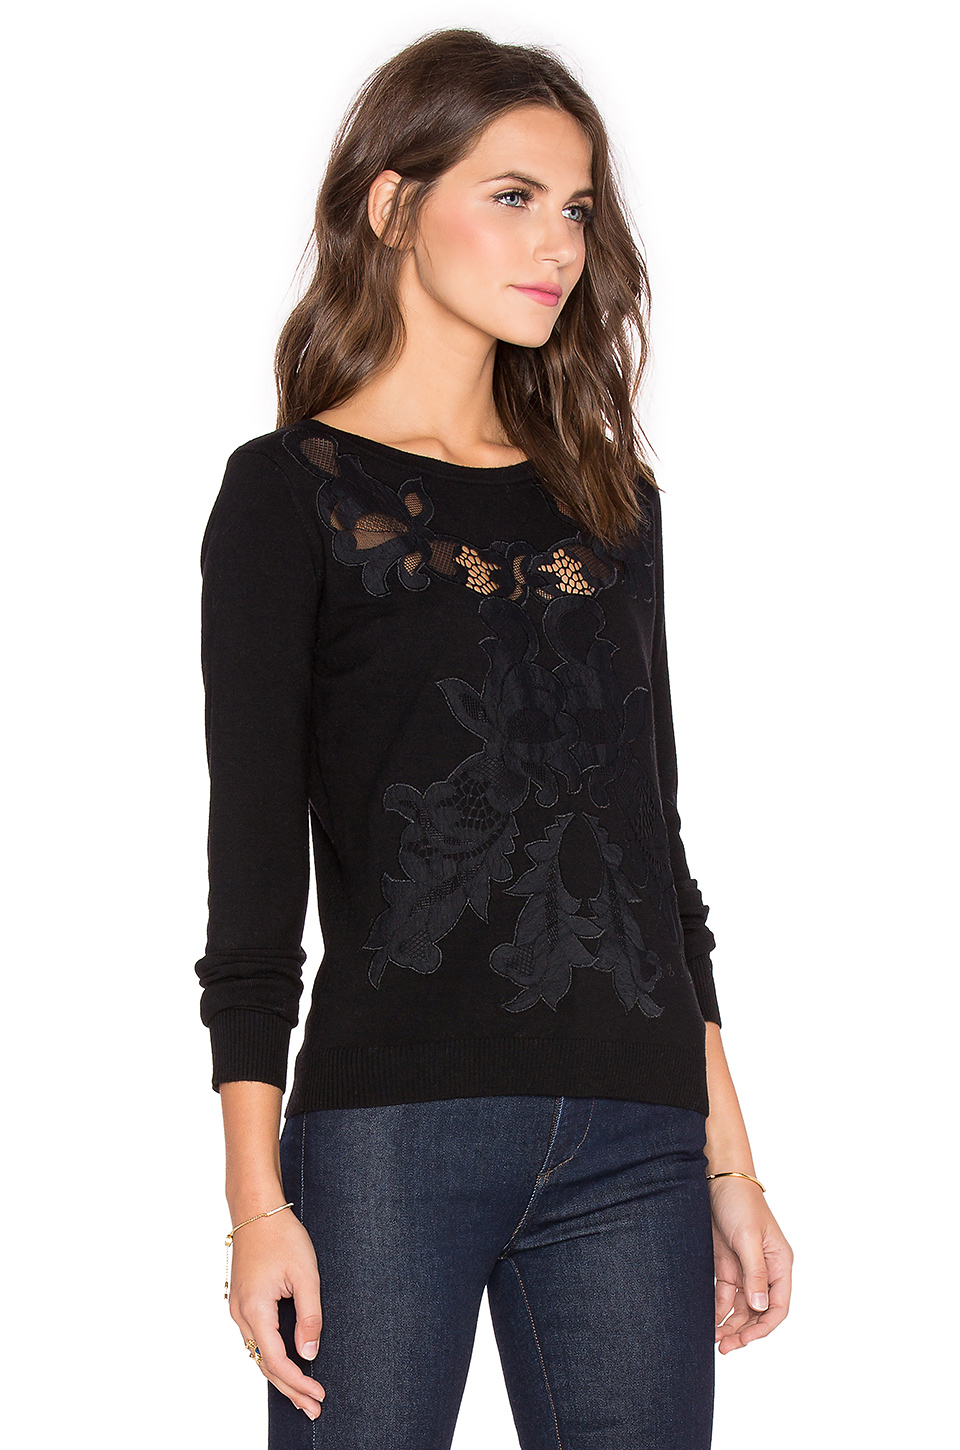 Diane von furstenberg Shana Lace Sweater in Black | Lyst